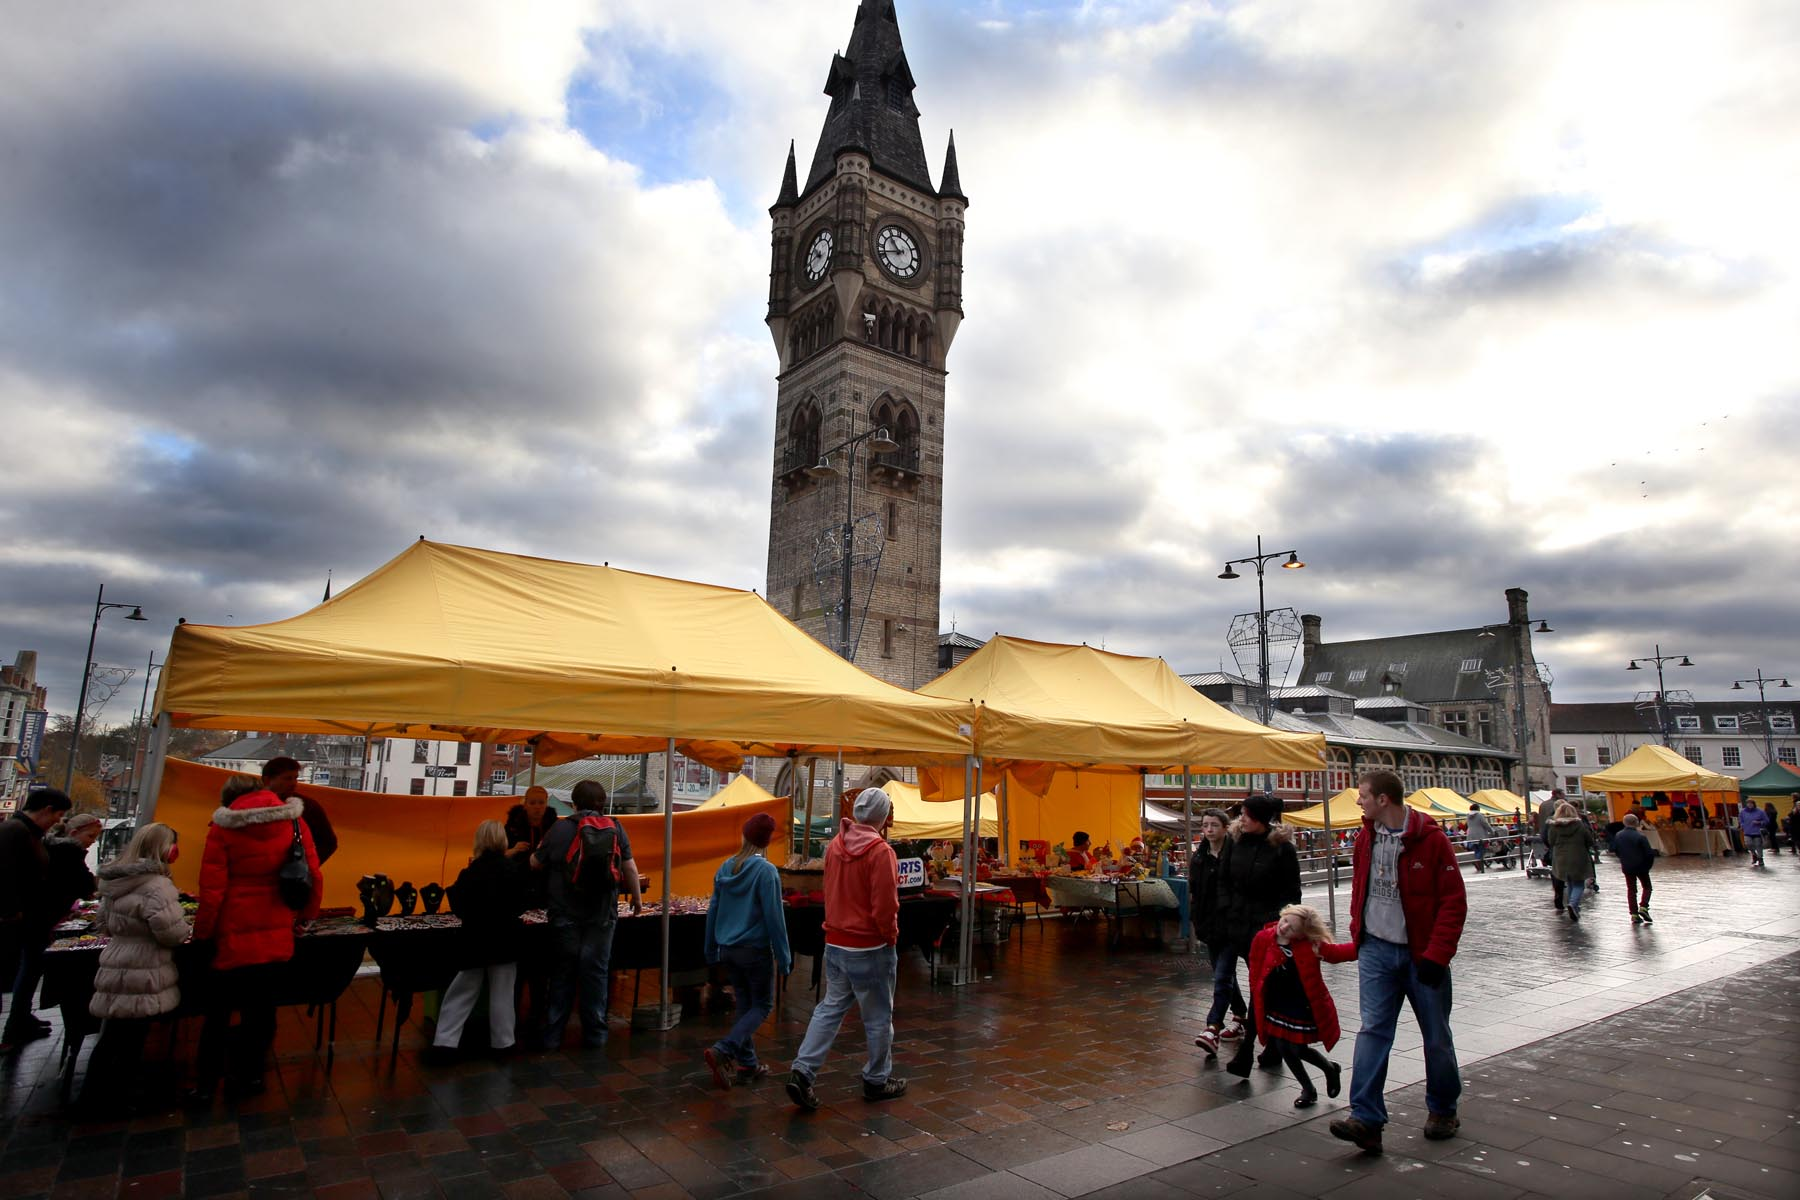 Darlington Sunday People's Market, which is offering reduced rates for teenage entrepreneurs